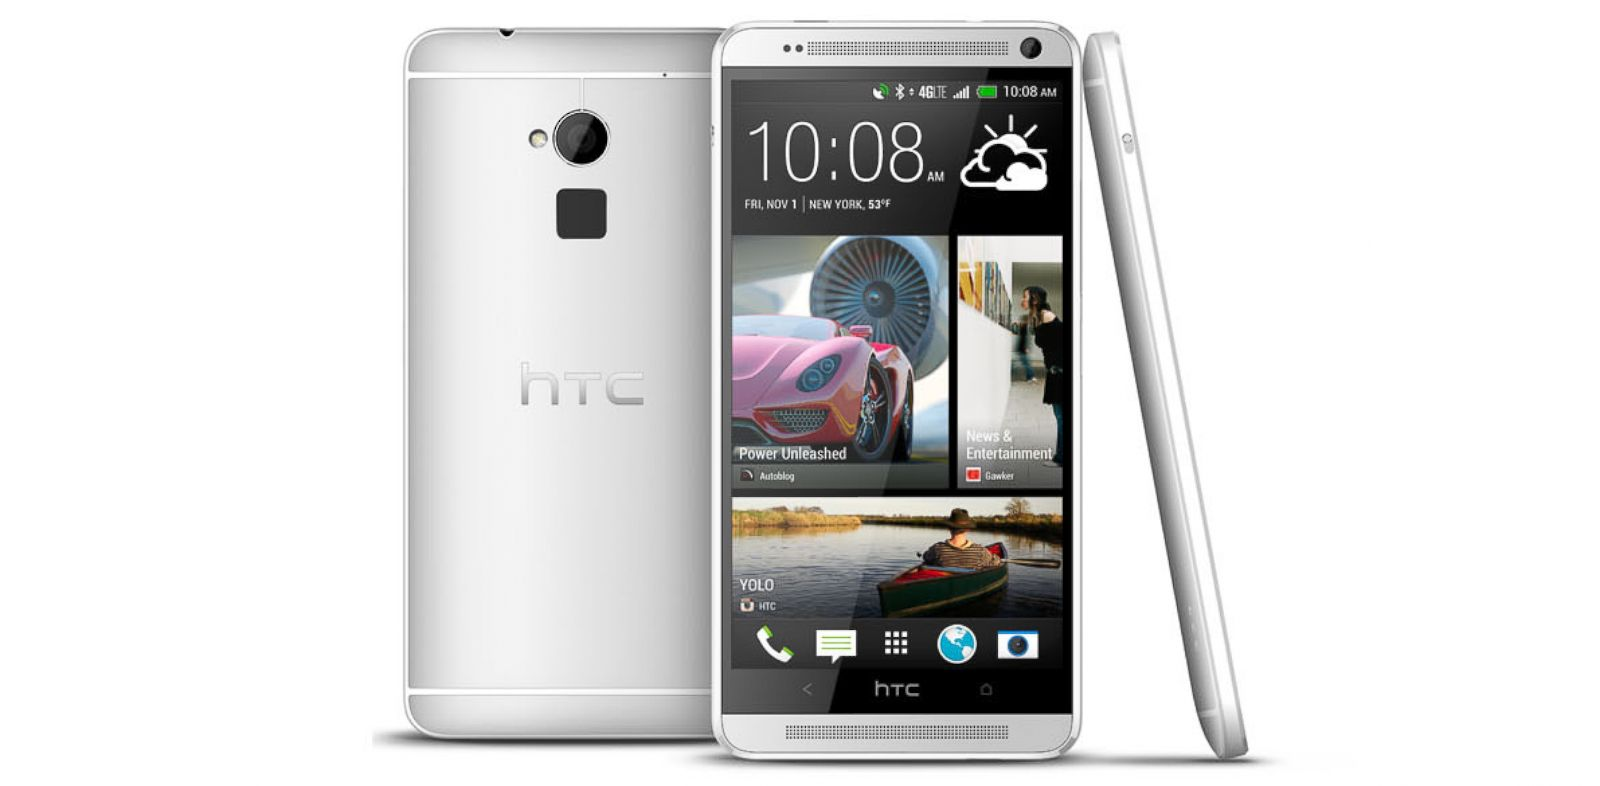 PHOTO: The HTC One Max has a large 5.9-inch, 1080p screen and a fingerprint reader.